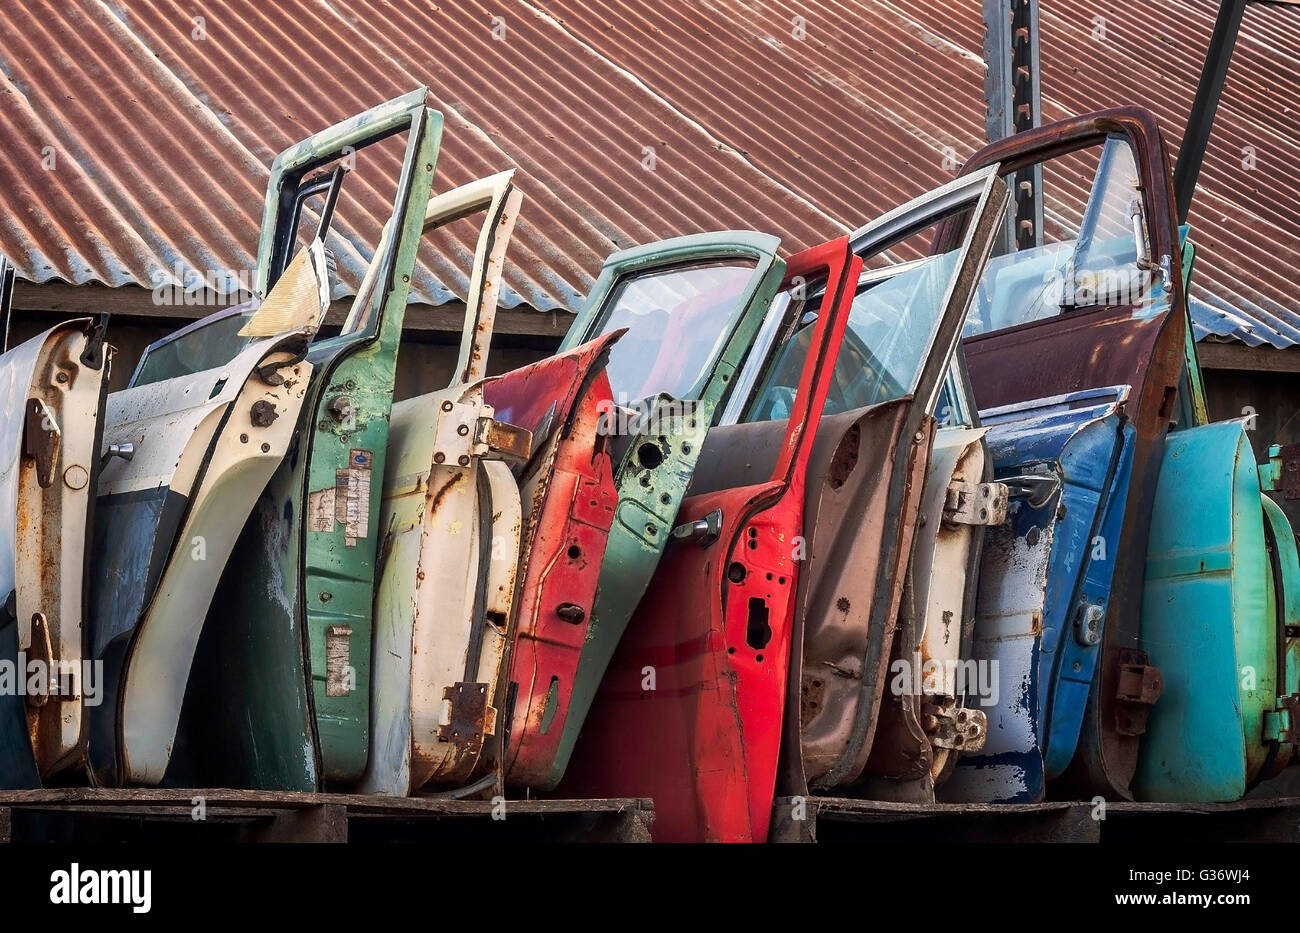 Junk Yard card doors waiting to be sold to an interested buyer. - Stock Image